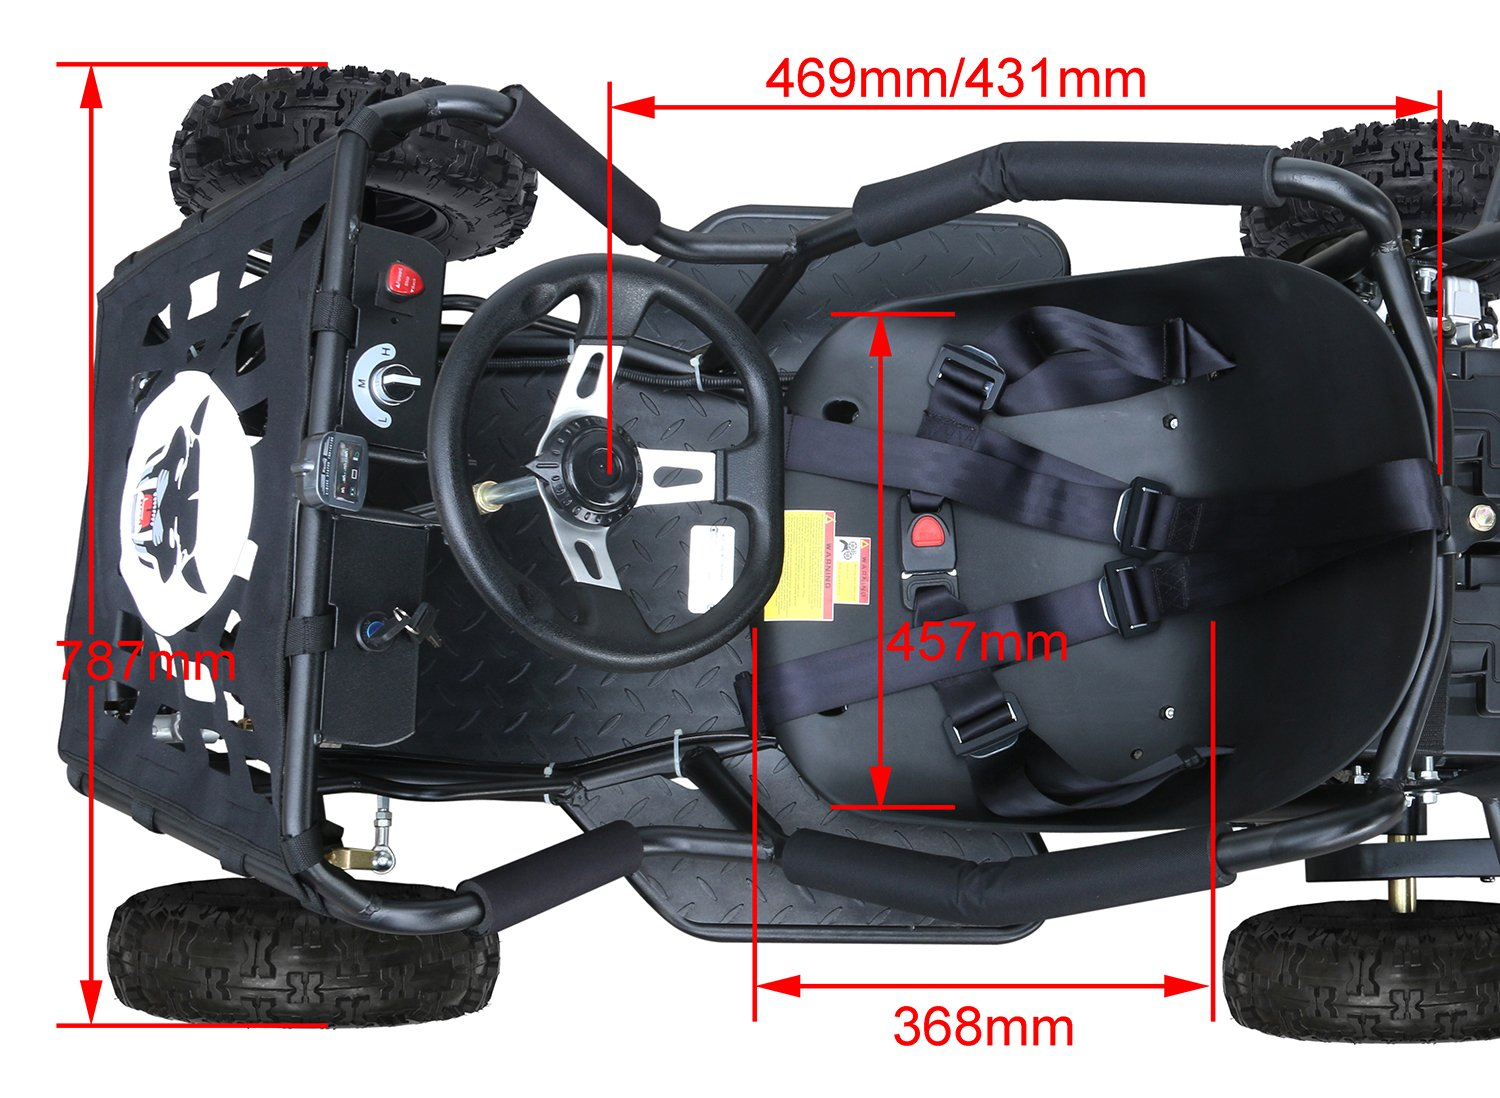 JCMOTO Electric Go Karts For Kids 4 Four Wheelers Off Road Tire 48v 1800w Black (Upgraded versions) by JCMOTO (Image #6)